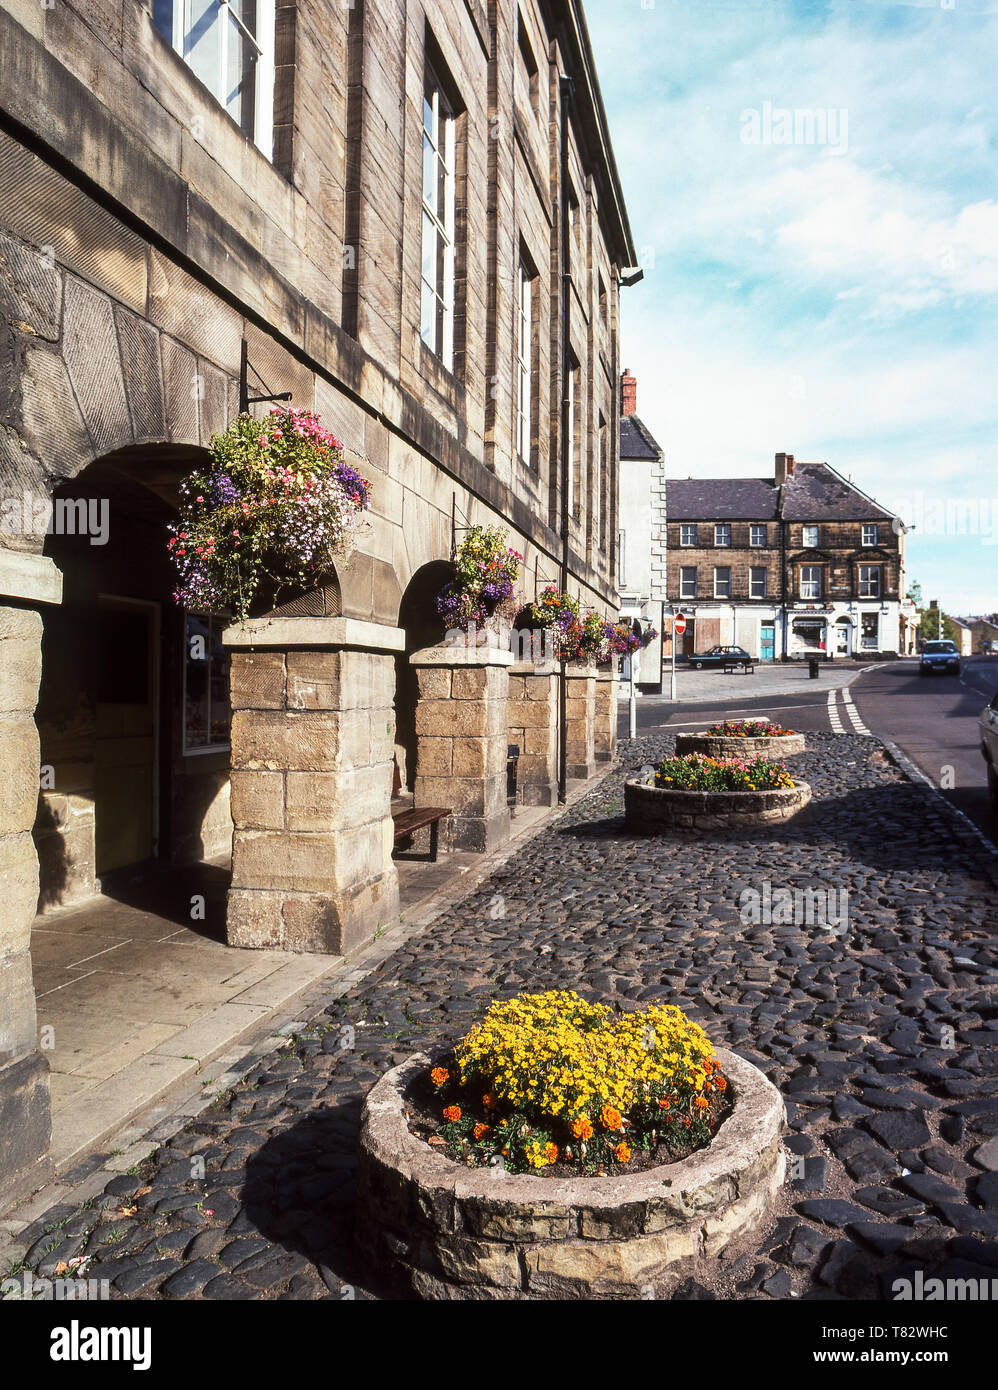 Alnwick Town Hall 1826. Northumberland,Harry Potter country. Approximately 50 miles north of Newcastle upon Tyne, England. - Stock Image